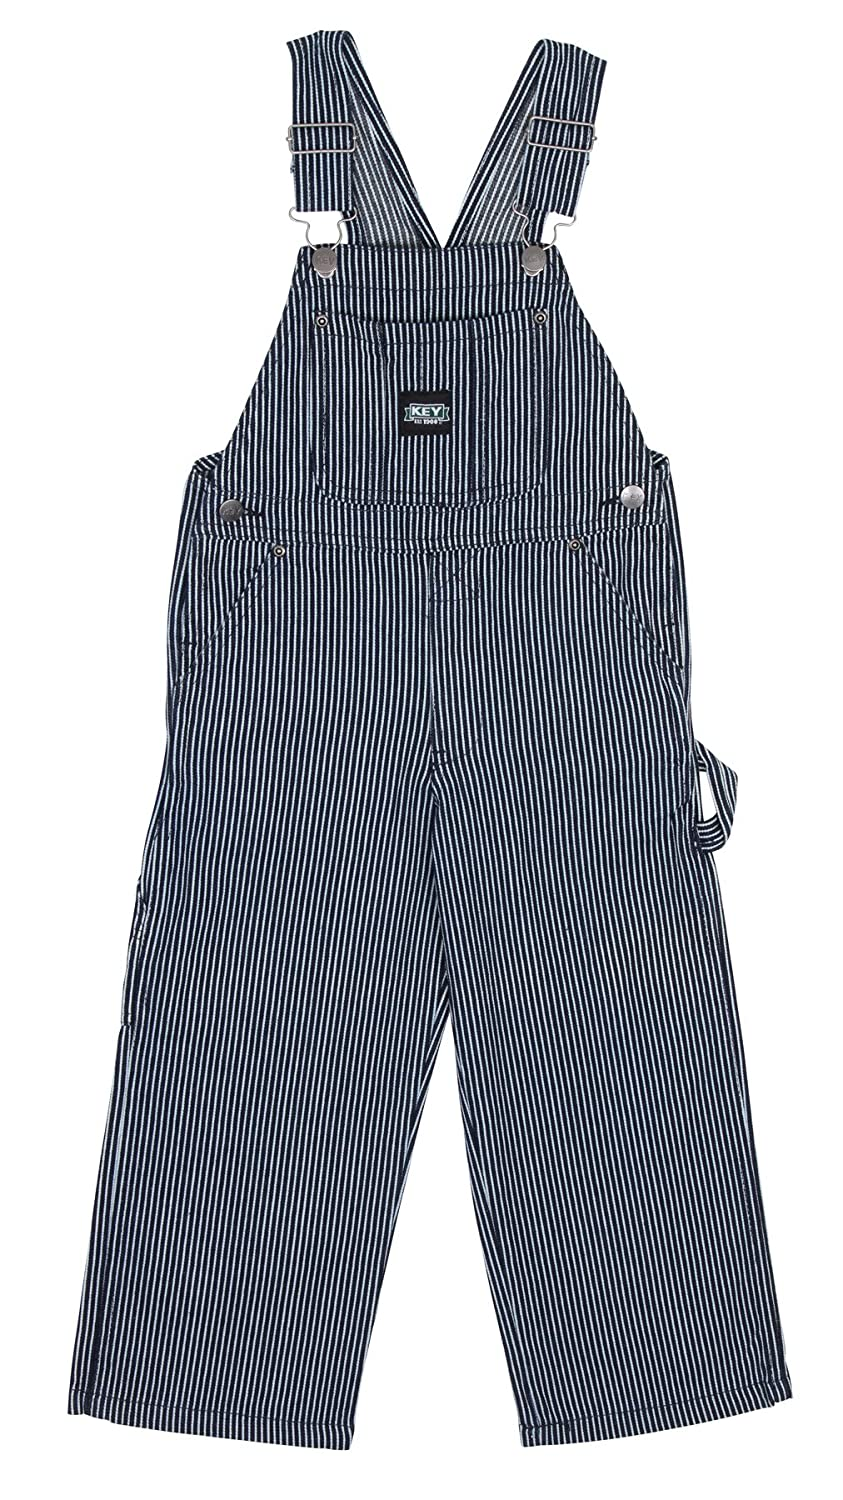 Key Industries Childrens Dungarees - Hickory Stripe Age 12m-7yrs Kids Bib Overal KID009